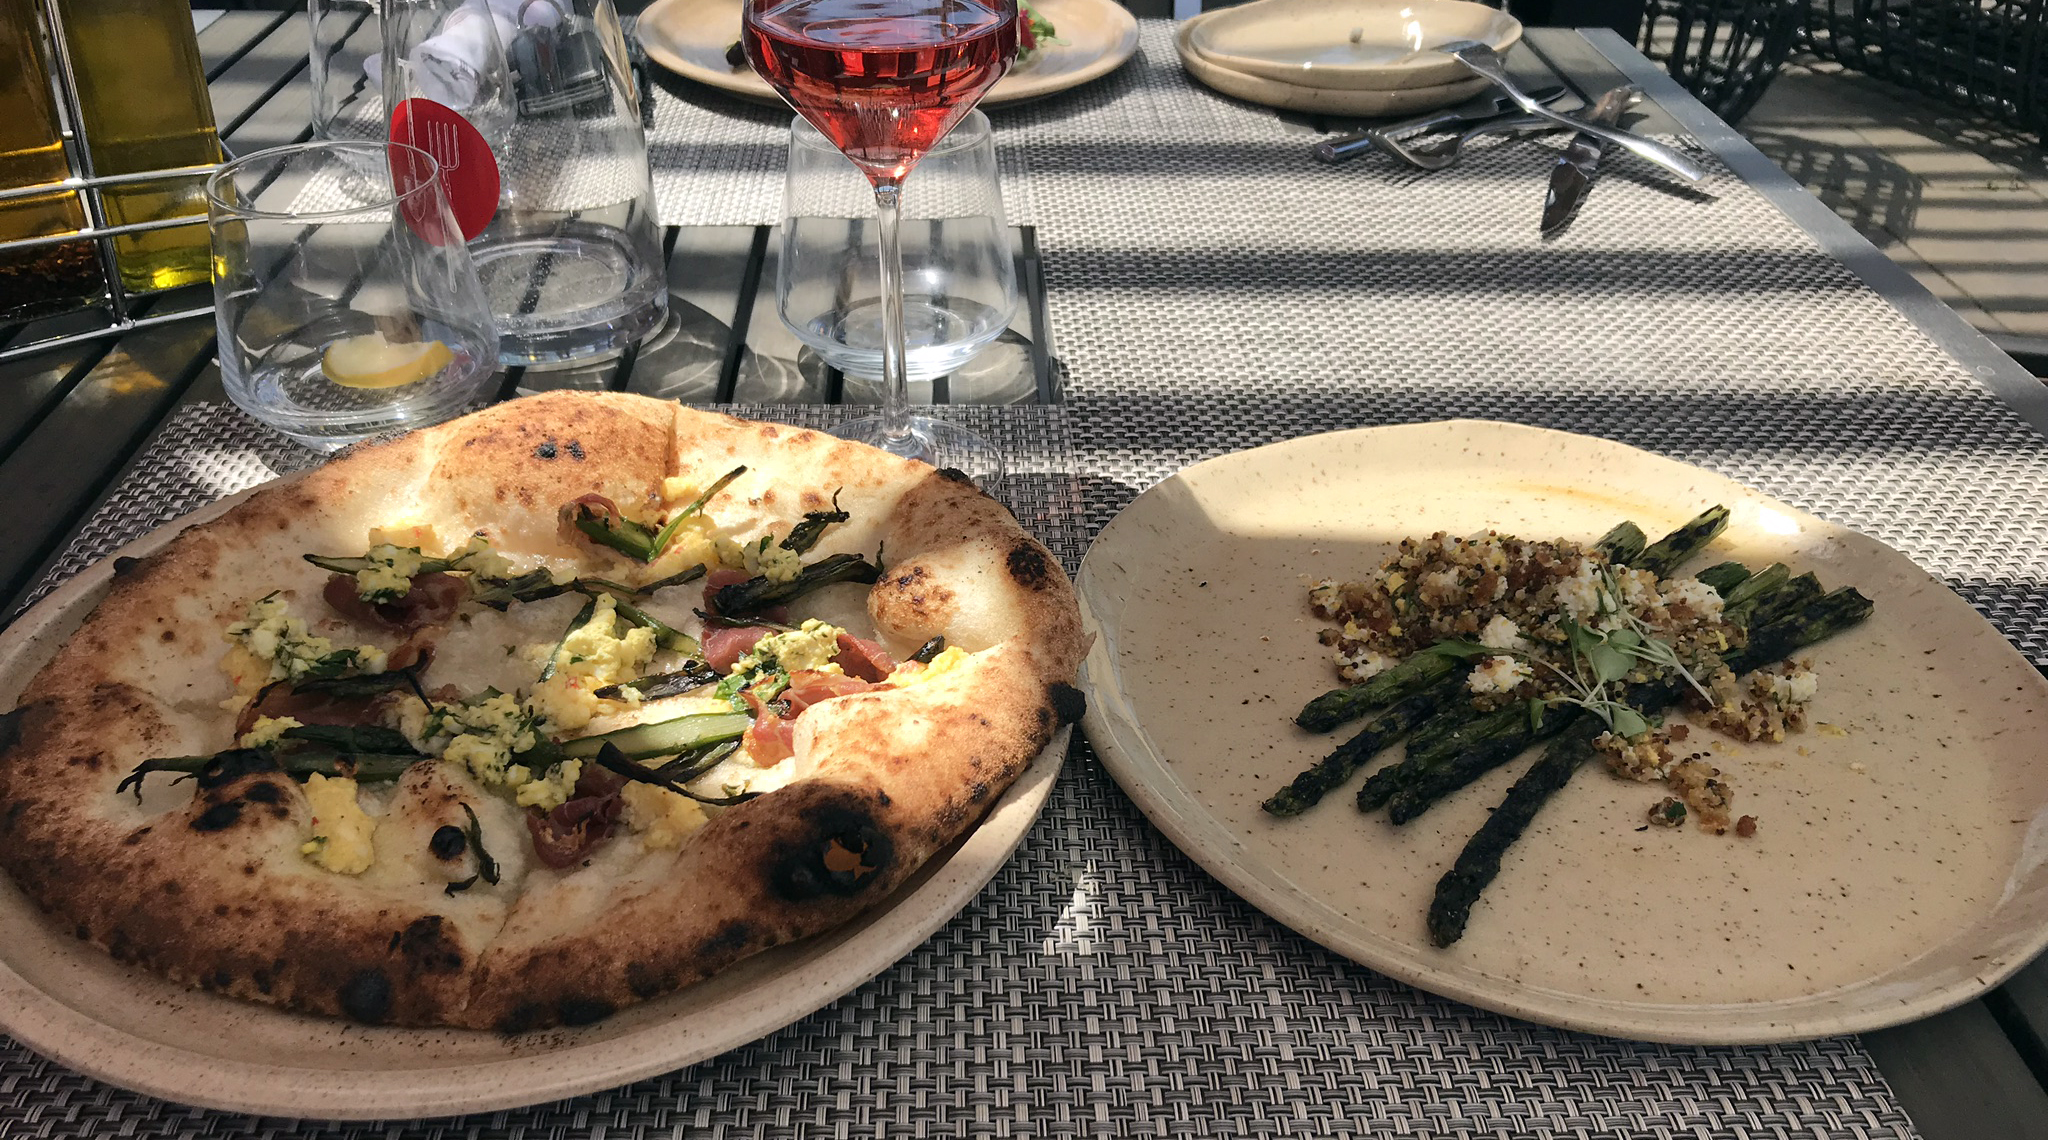 The Restaurant at RedStone - Pizza and asparagus